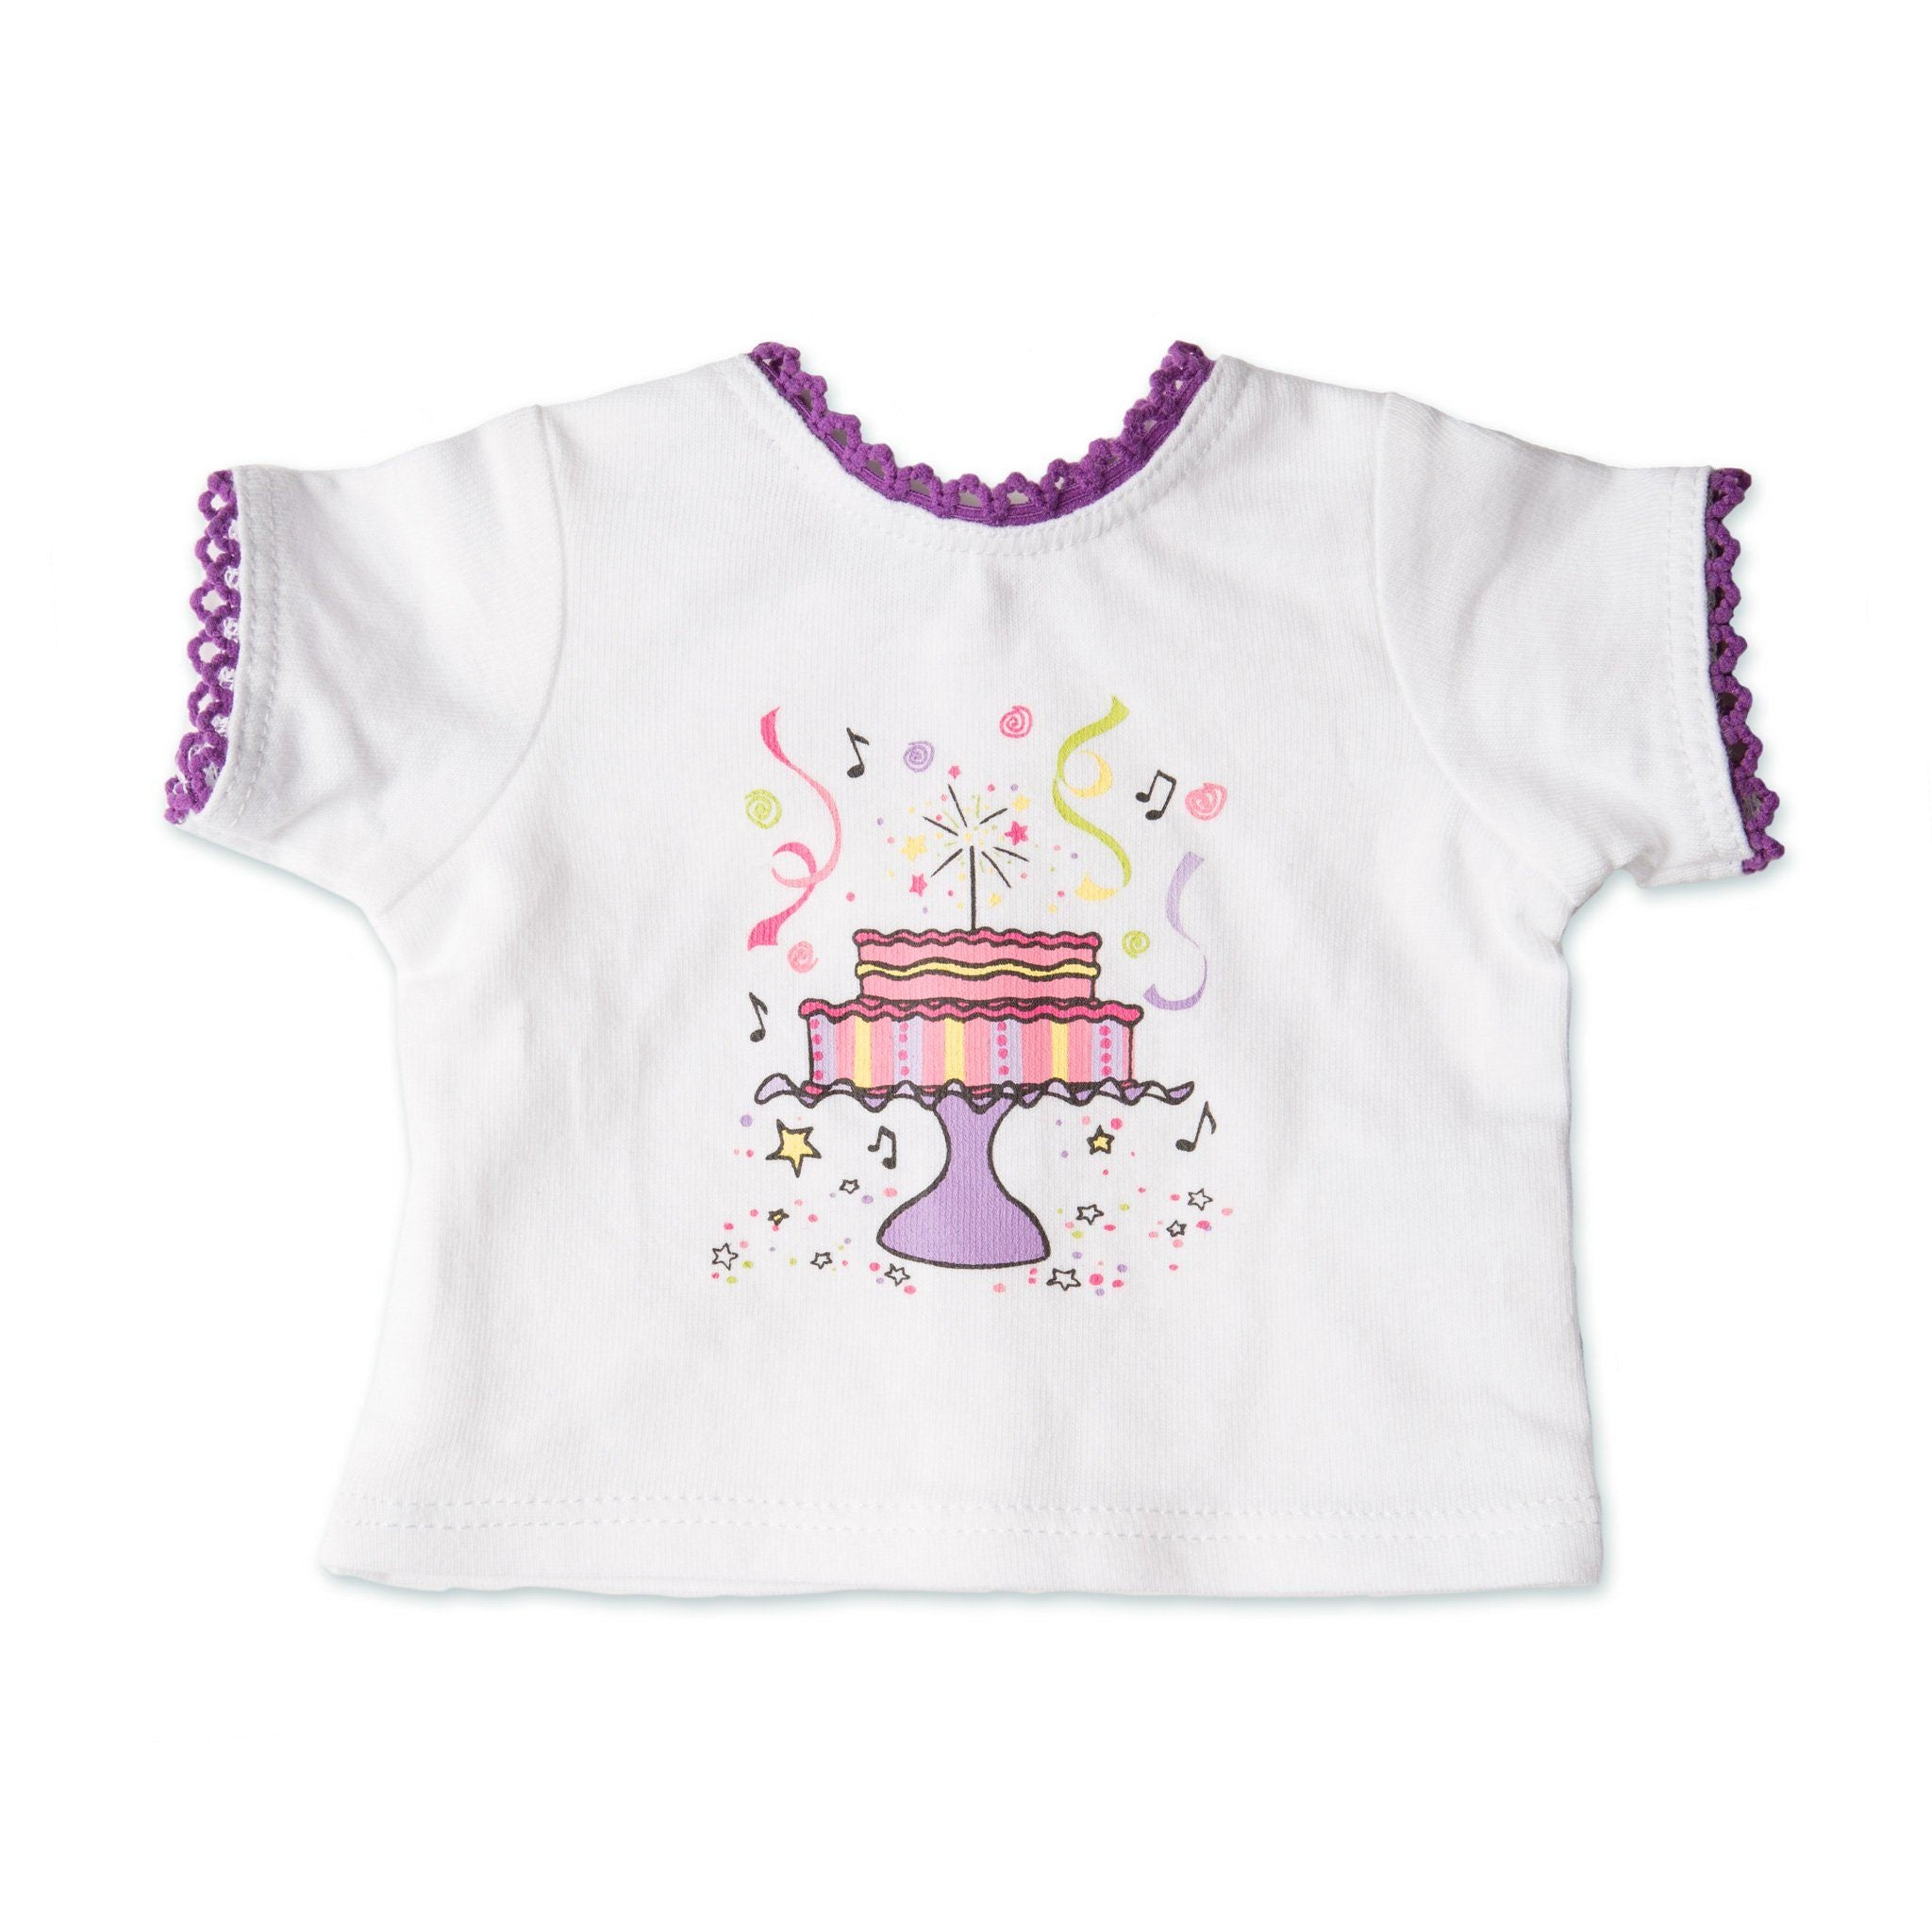 Set to Celebrate white t-shirt with purple lace trim and festive cake screen printed graphic 18 inch dolls.